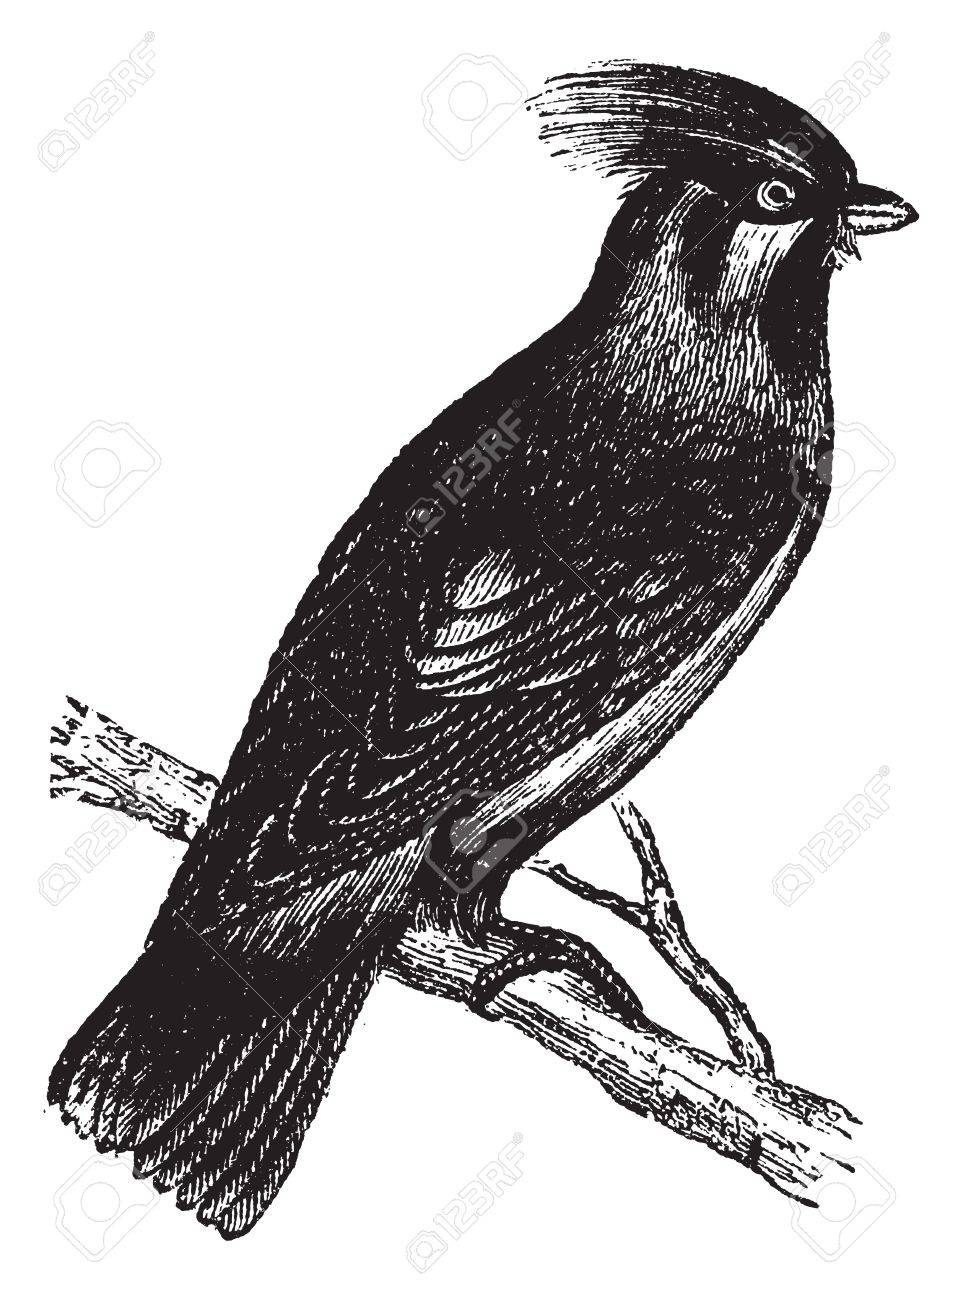 Bohemian Waxwing or Bombycilla garrulus,vintage engraving. Old engraved illustration of Bohemian Waxwing waiting on a branch. Stock Vector - 13767097